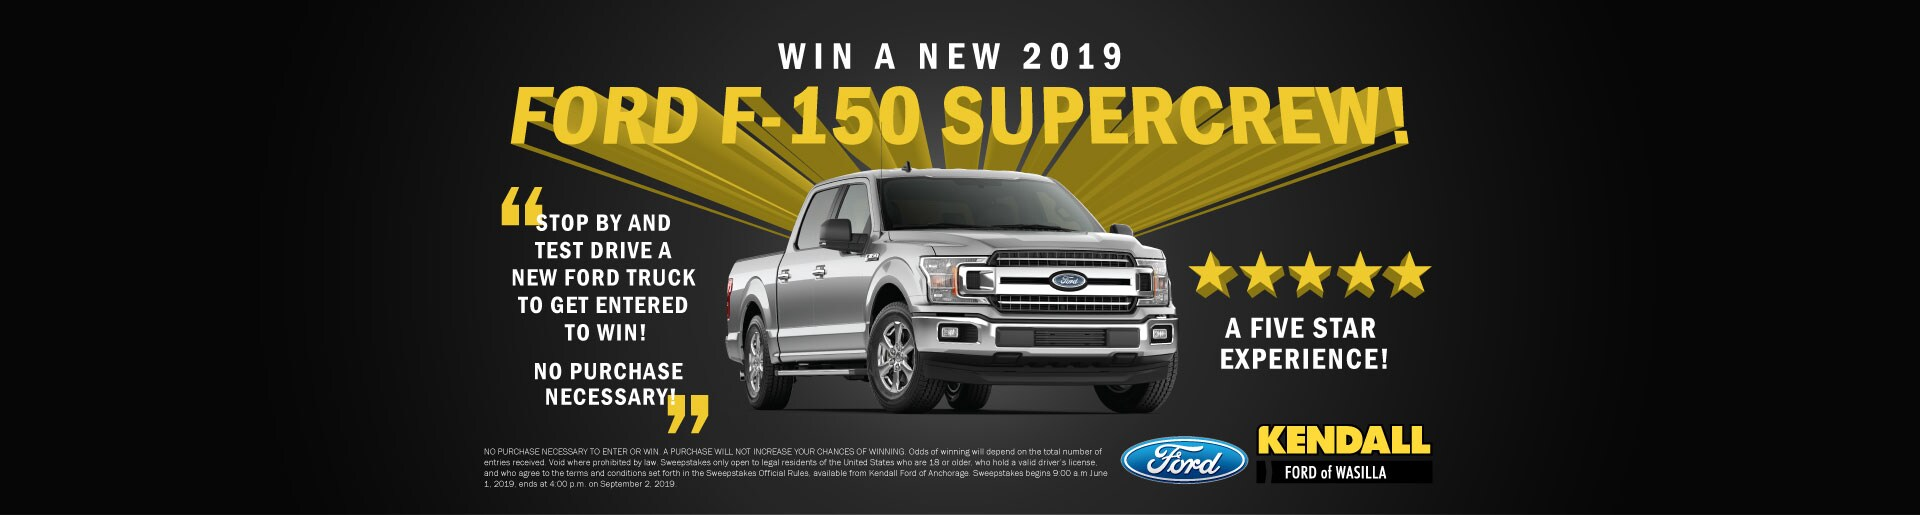 win a free ford f-150 truck